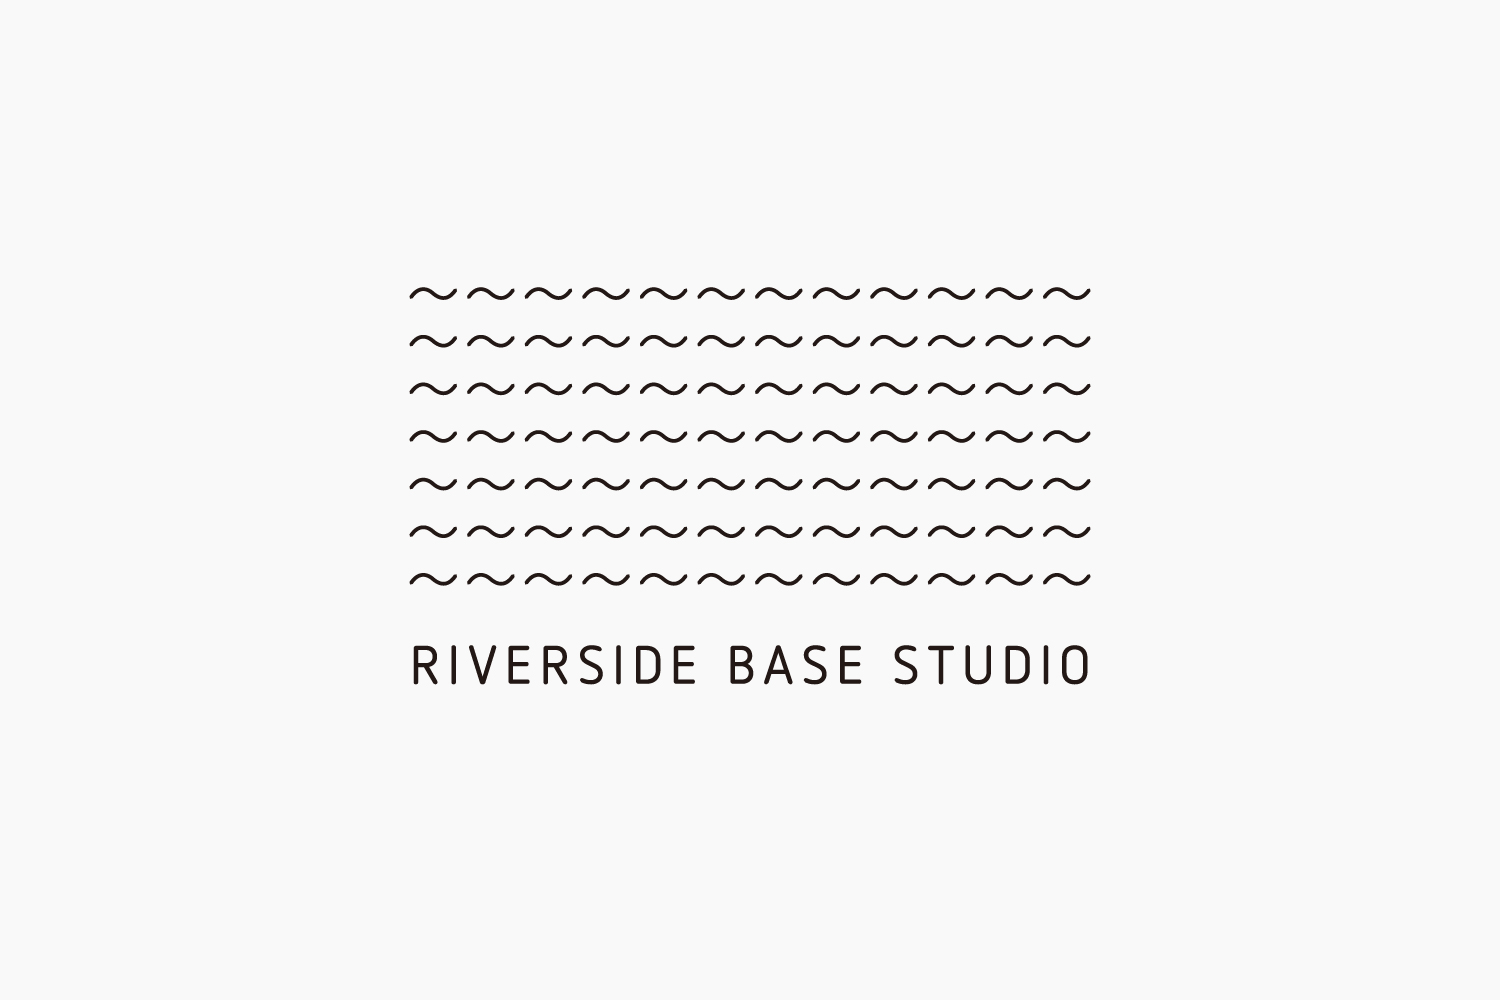 RIVERSIDE BASE STUDIO